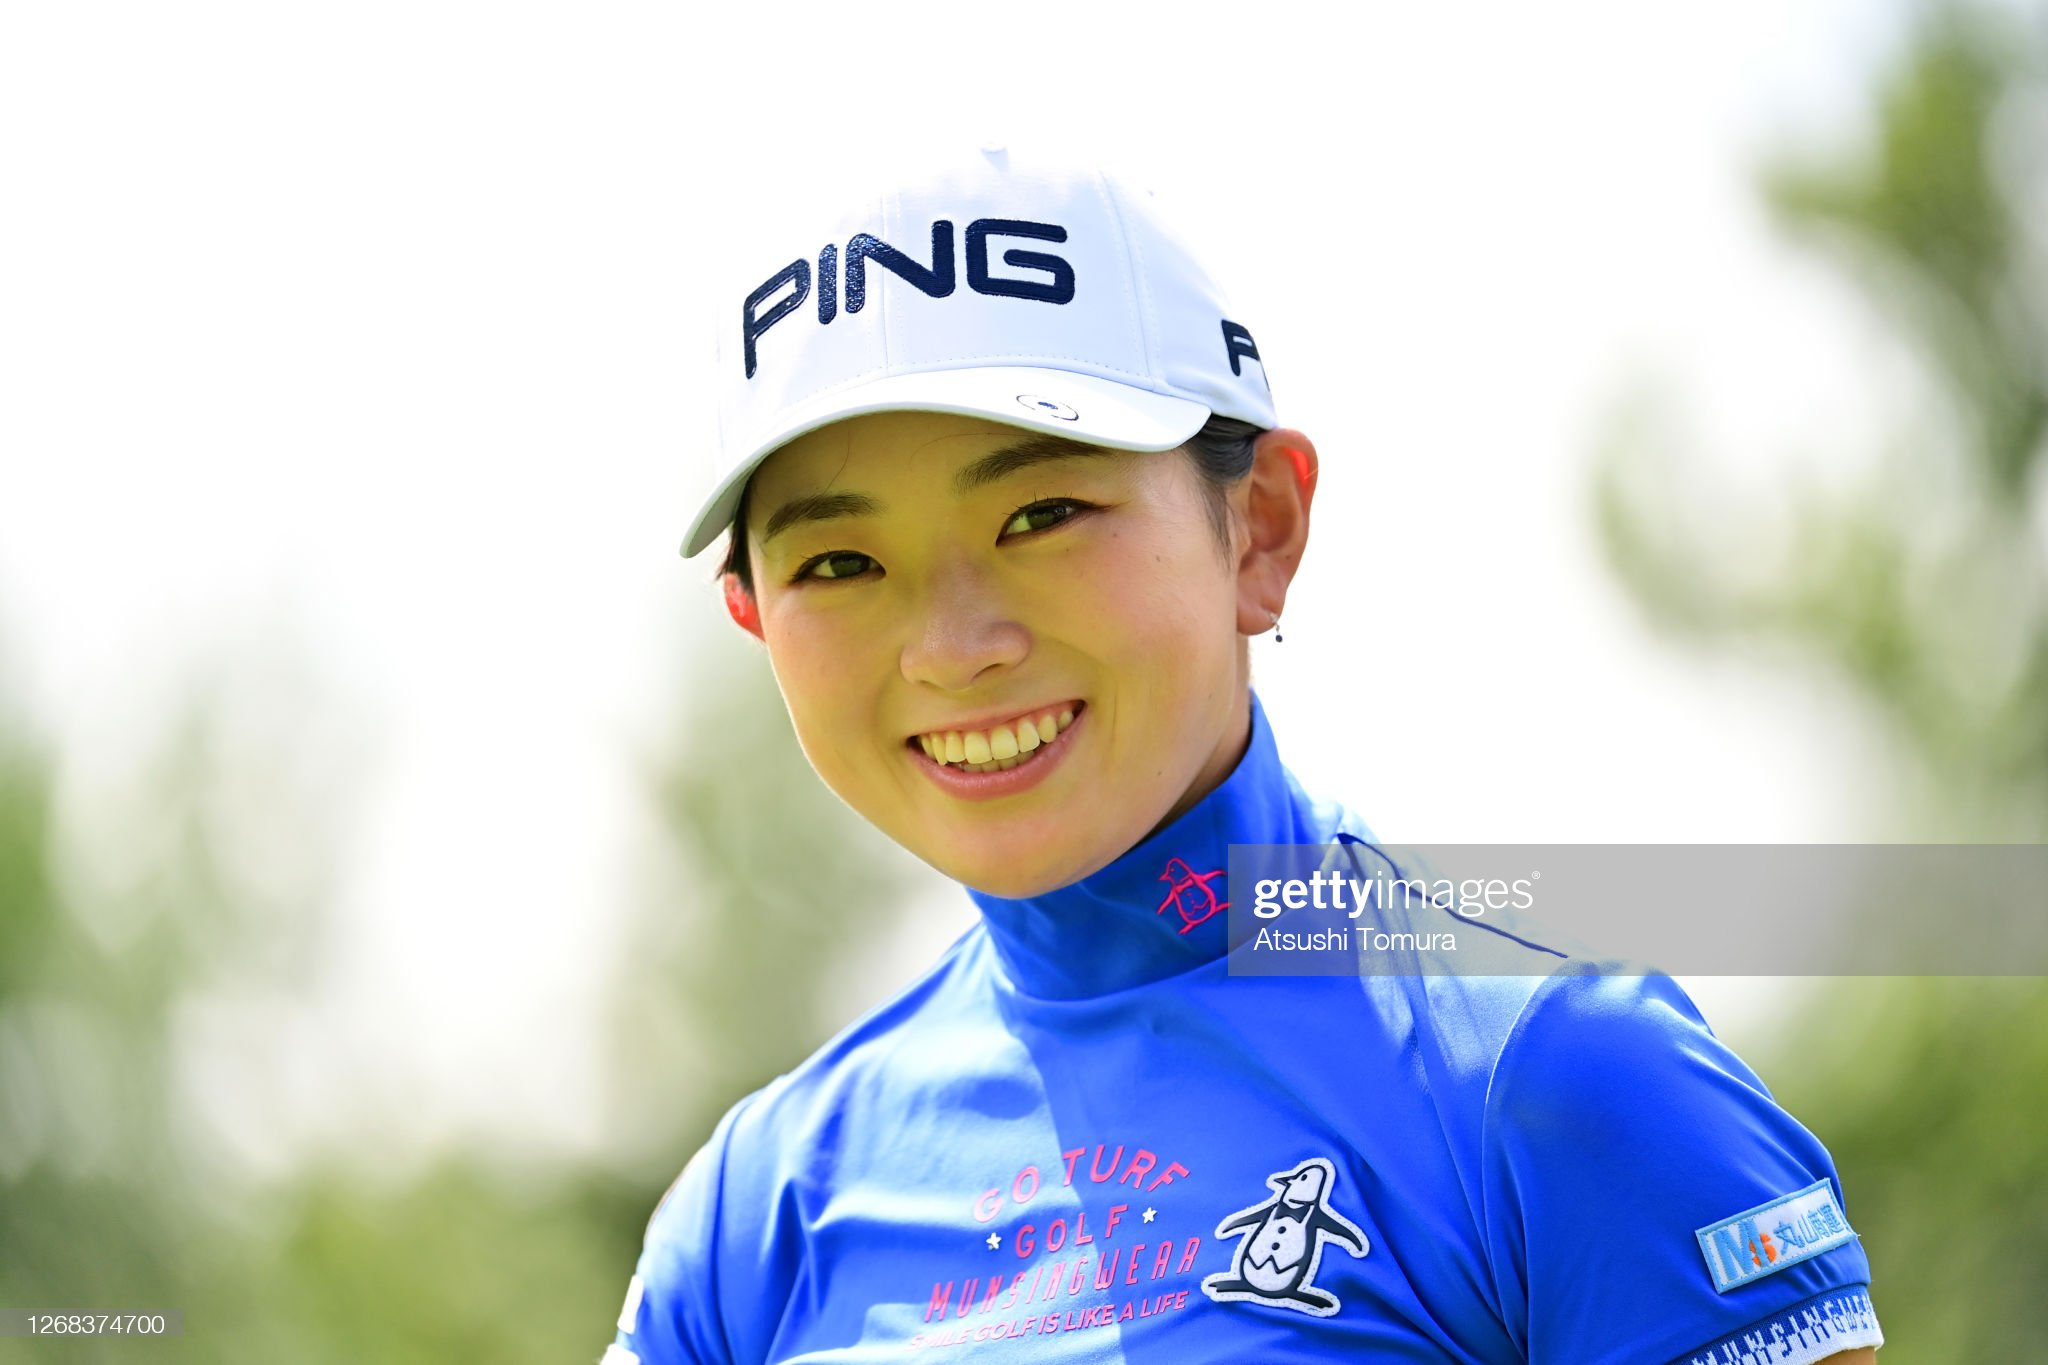 https://media.gettyimages.com/photos/momo-yoshikawa-of-japan-is-seen-on-the-18th-hole-during-a-practice-picture-id1268374700?s=2048x2048